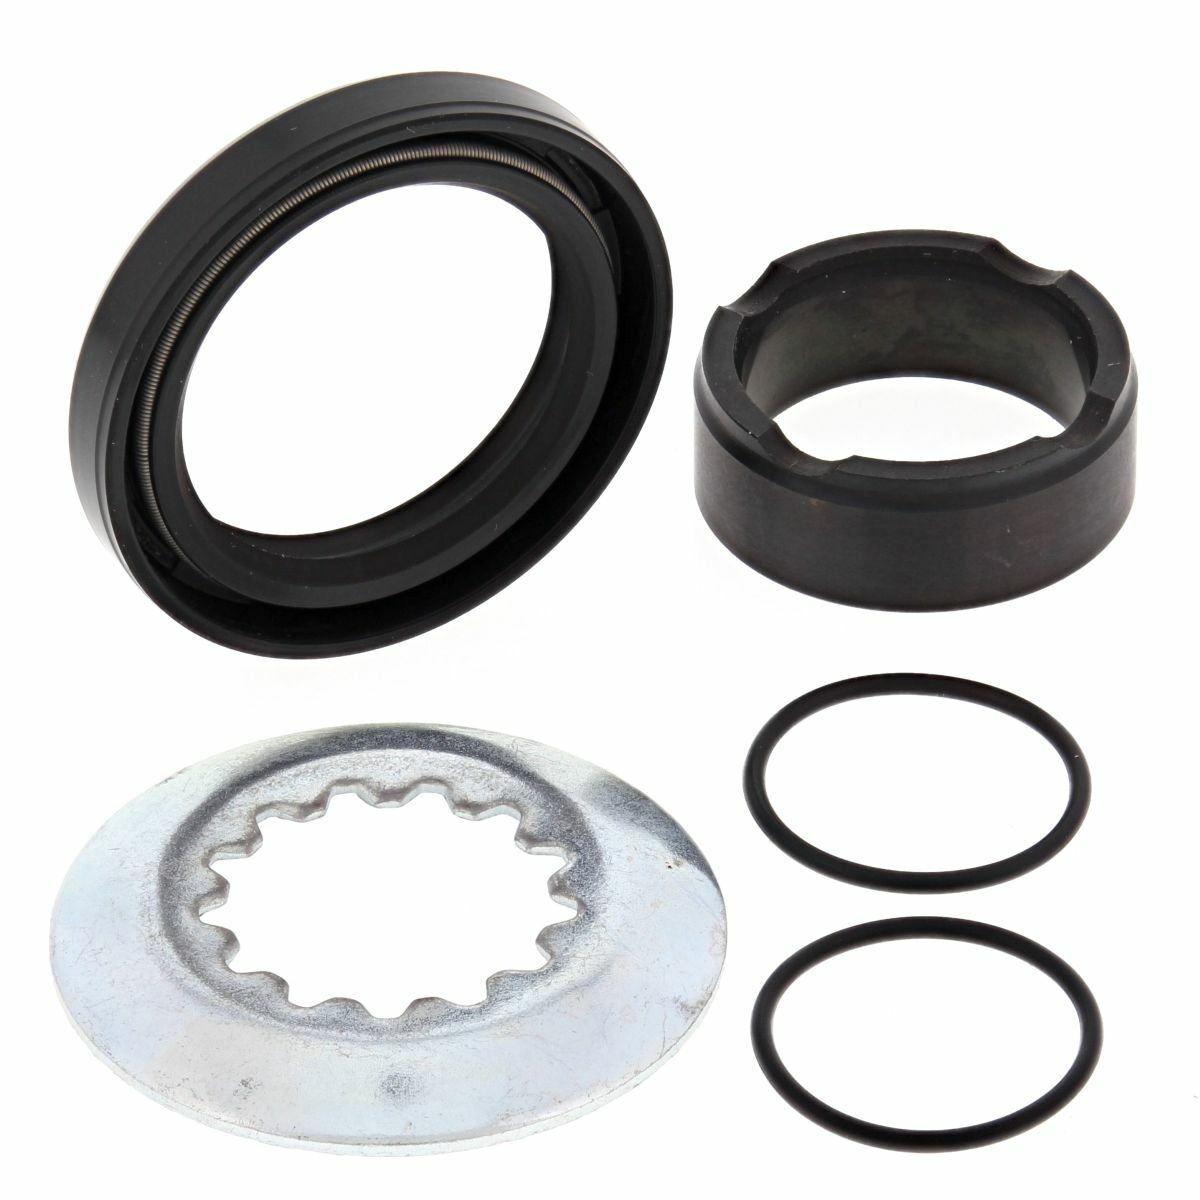 Obrázek produktu Counter shaft Seal Kit All Balls Racing 25-4040